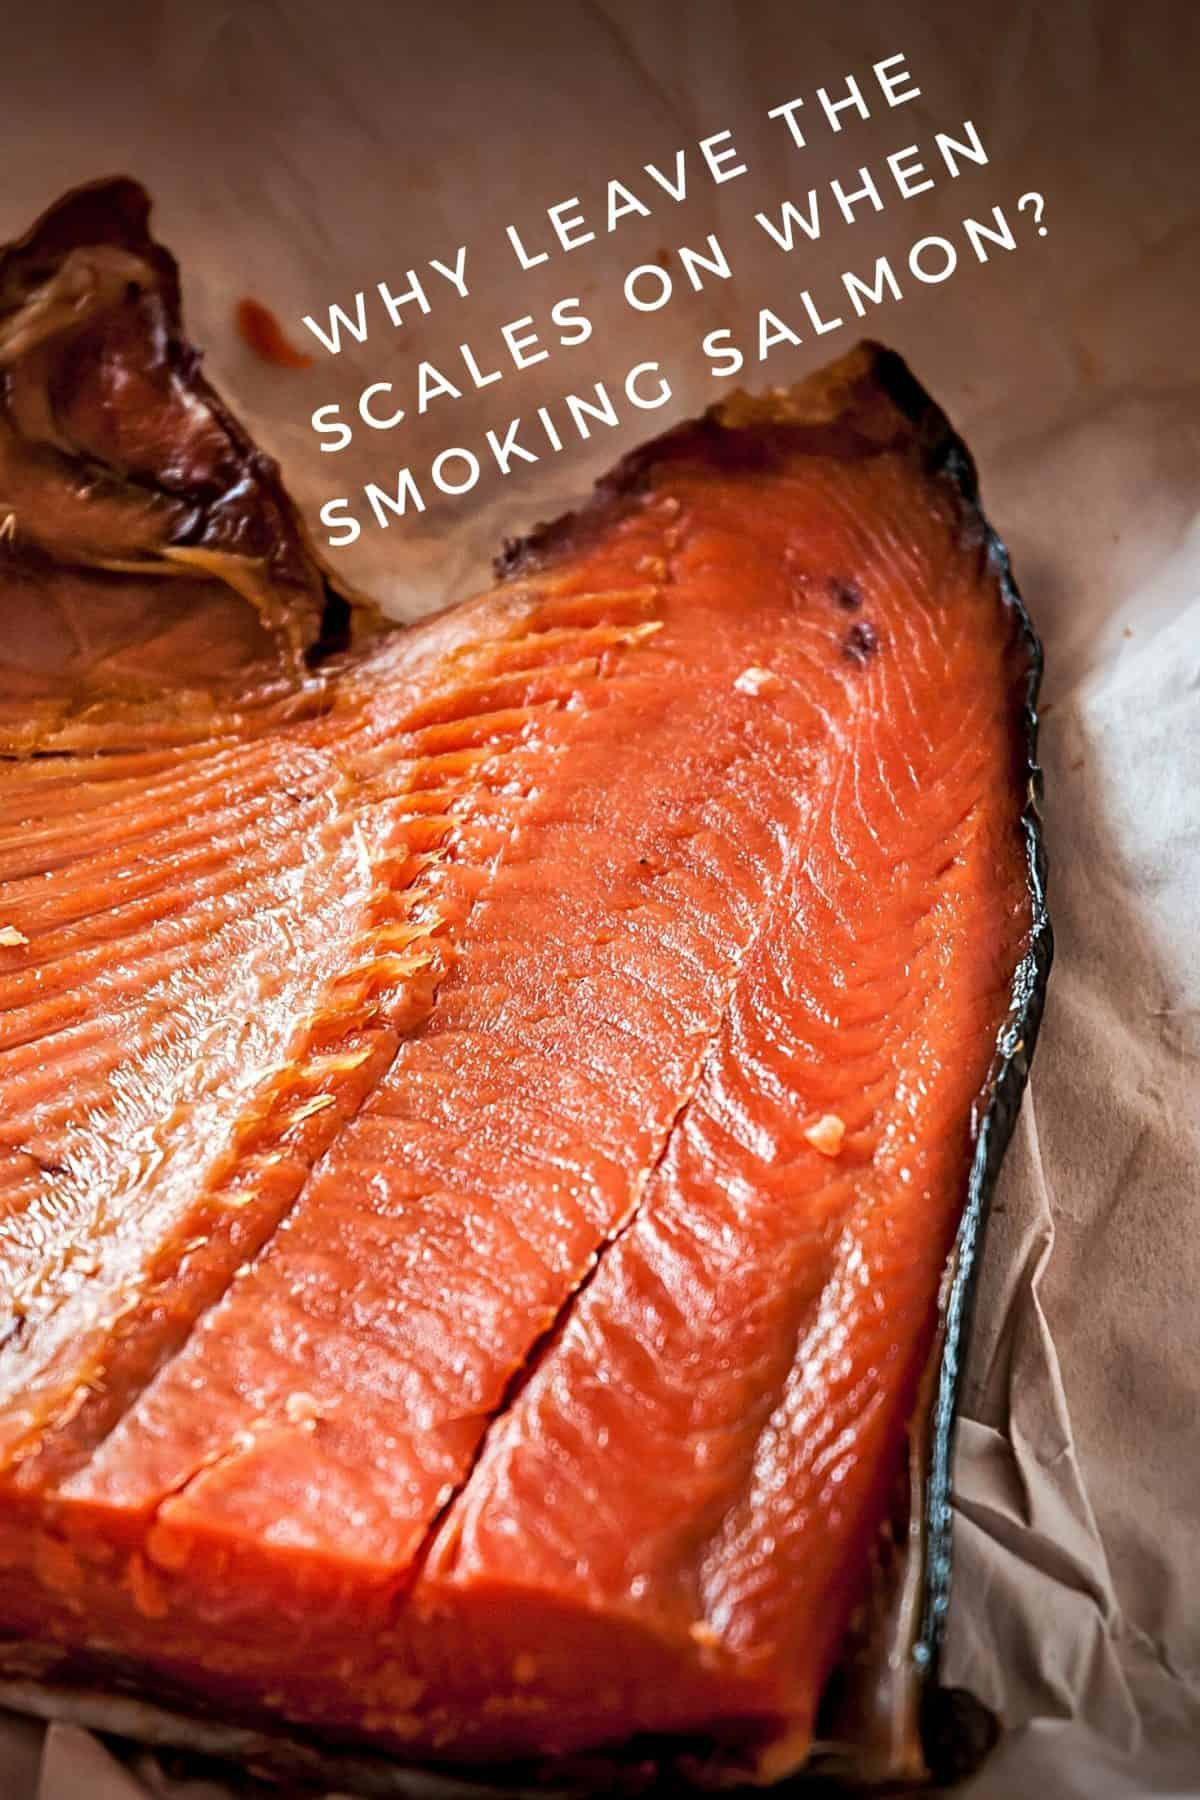 Why leave the scales on when smoking salmon